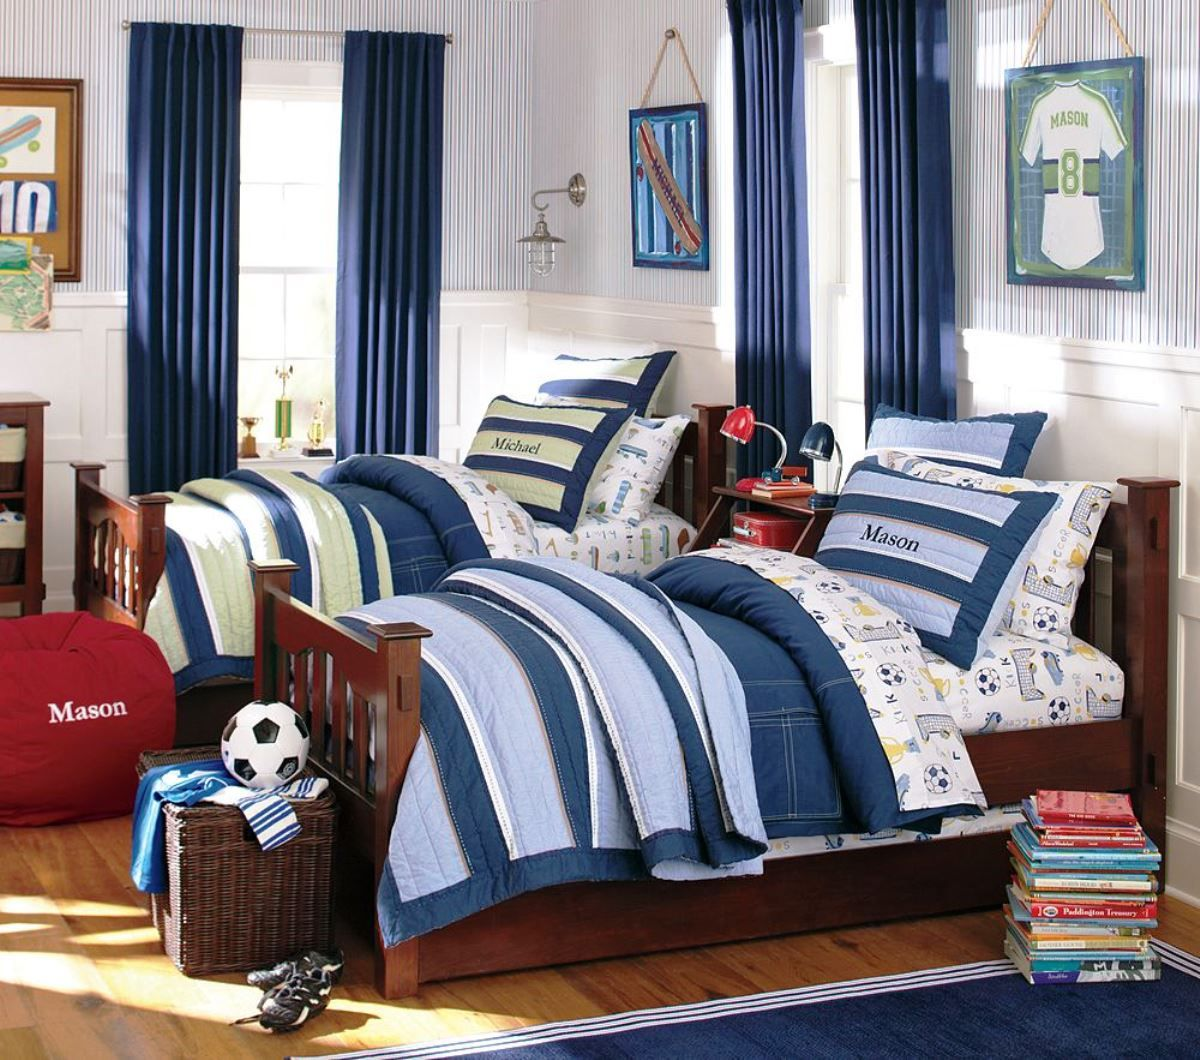 Boys Sports Bedroom double bed bedrooms | double boys sports bedroom ideas | secondary